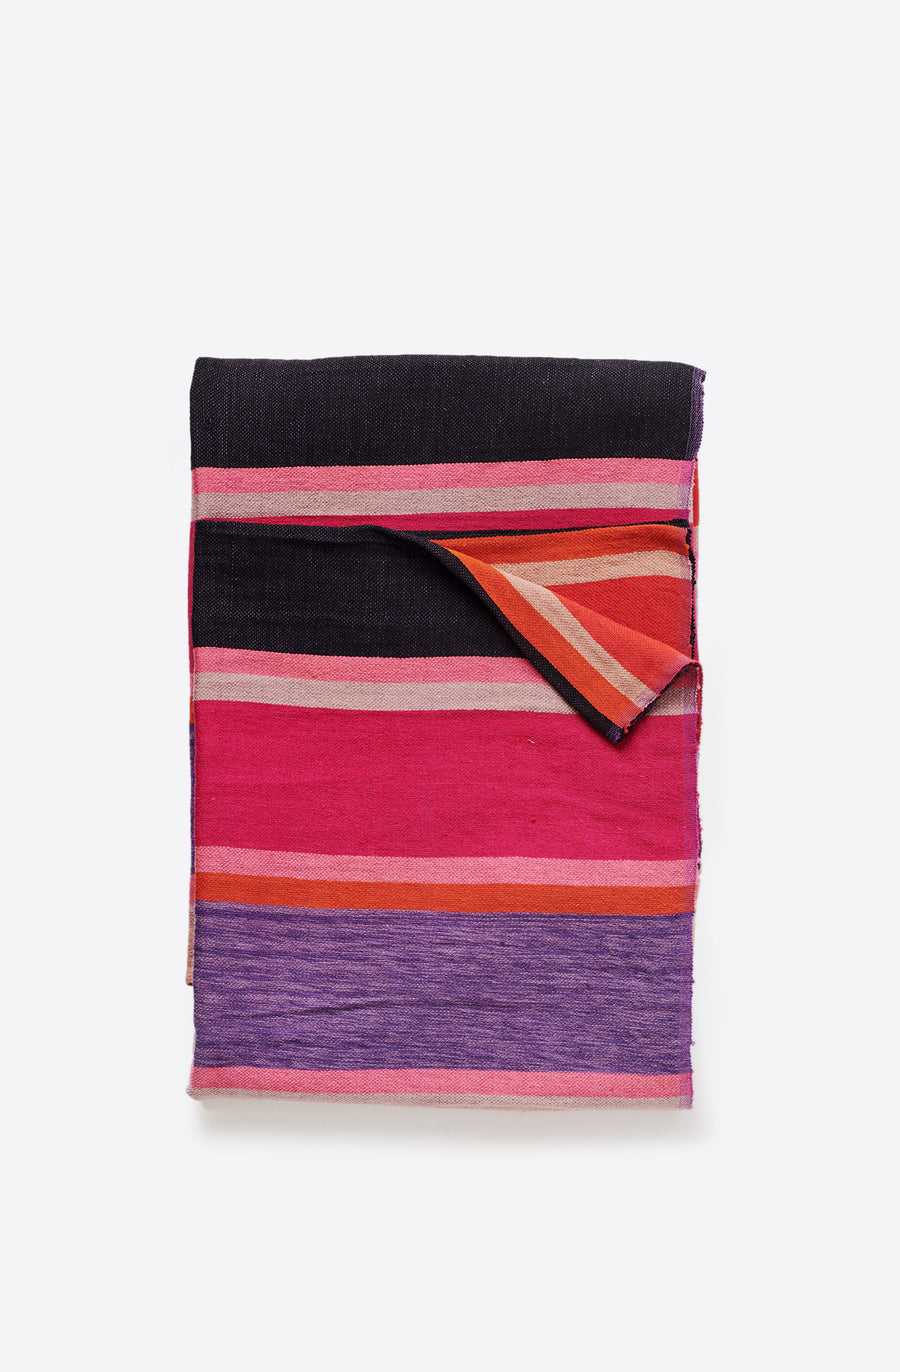 Purple Striped Blanket-purple